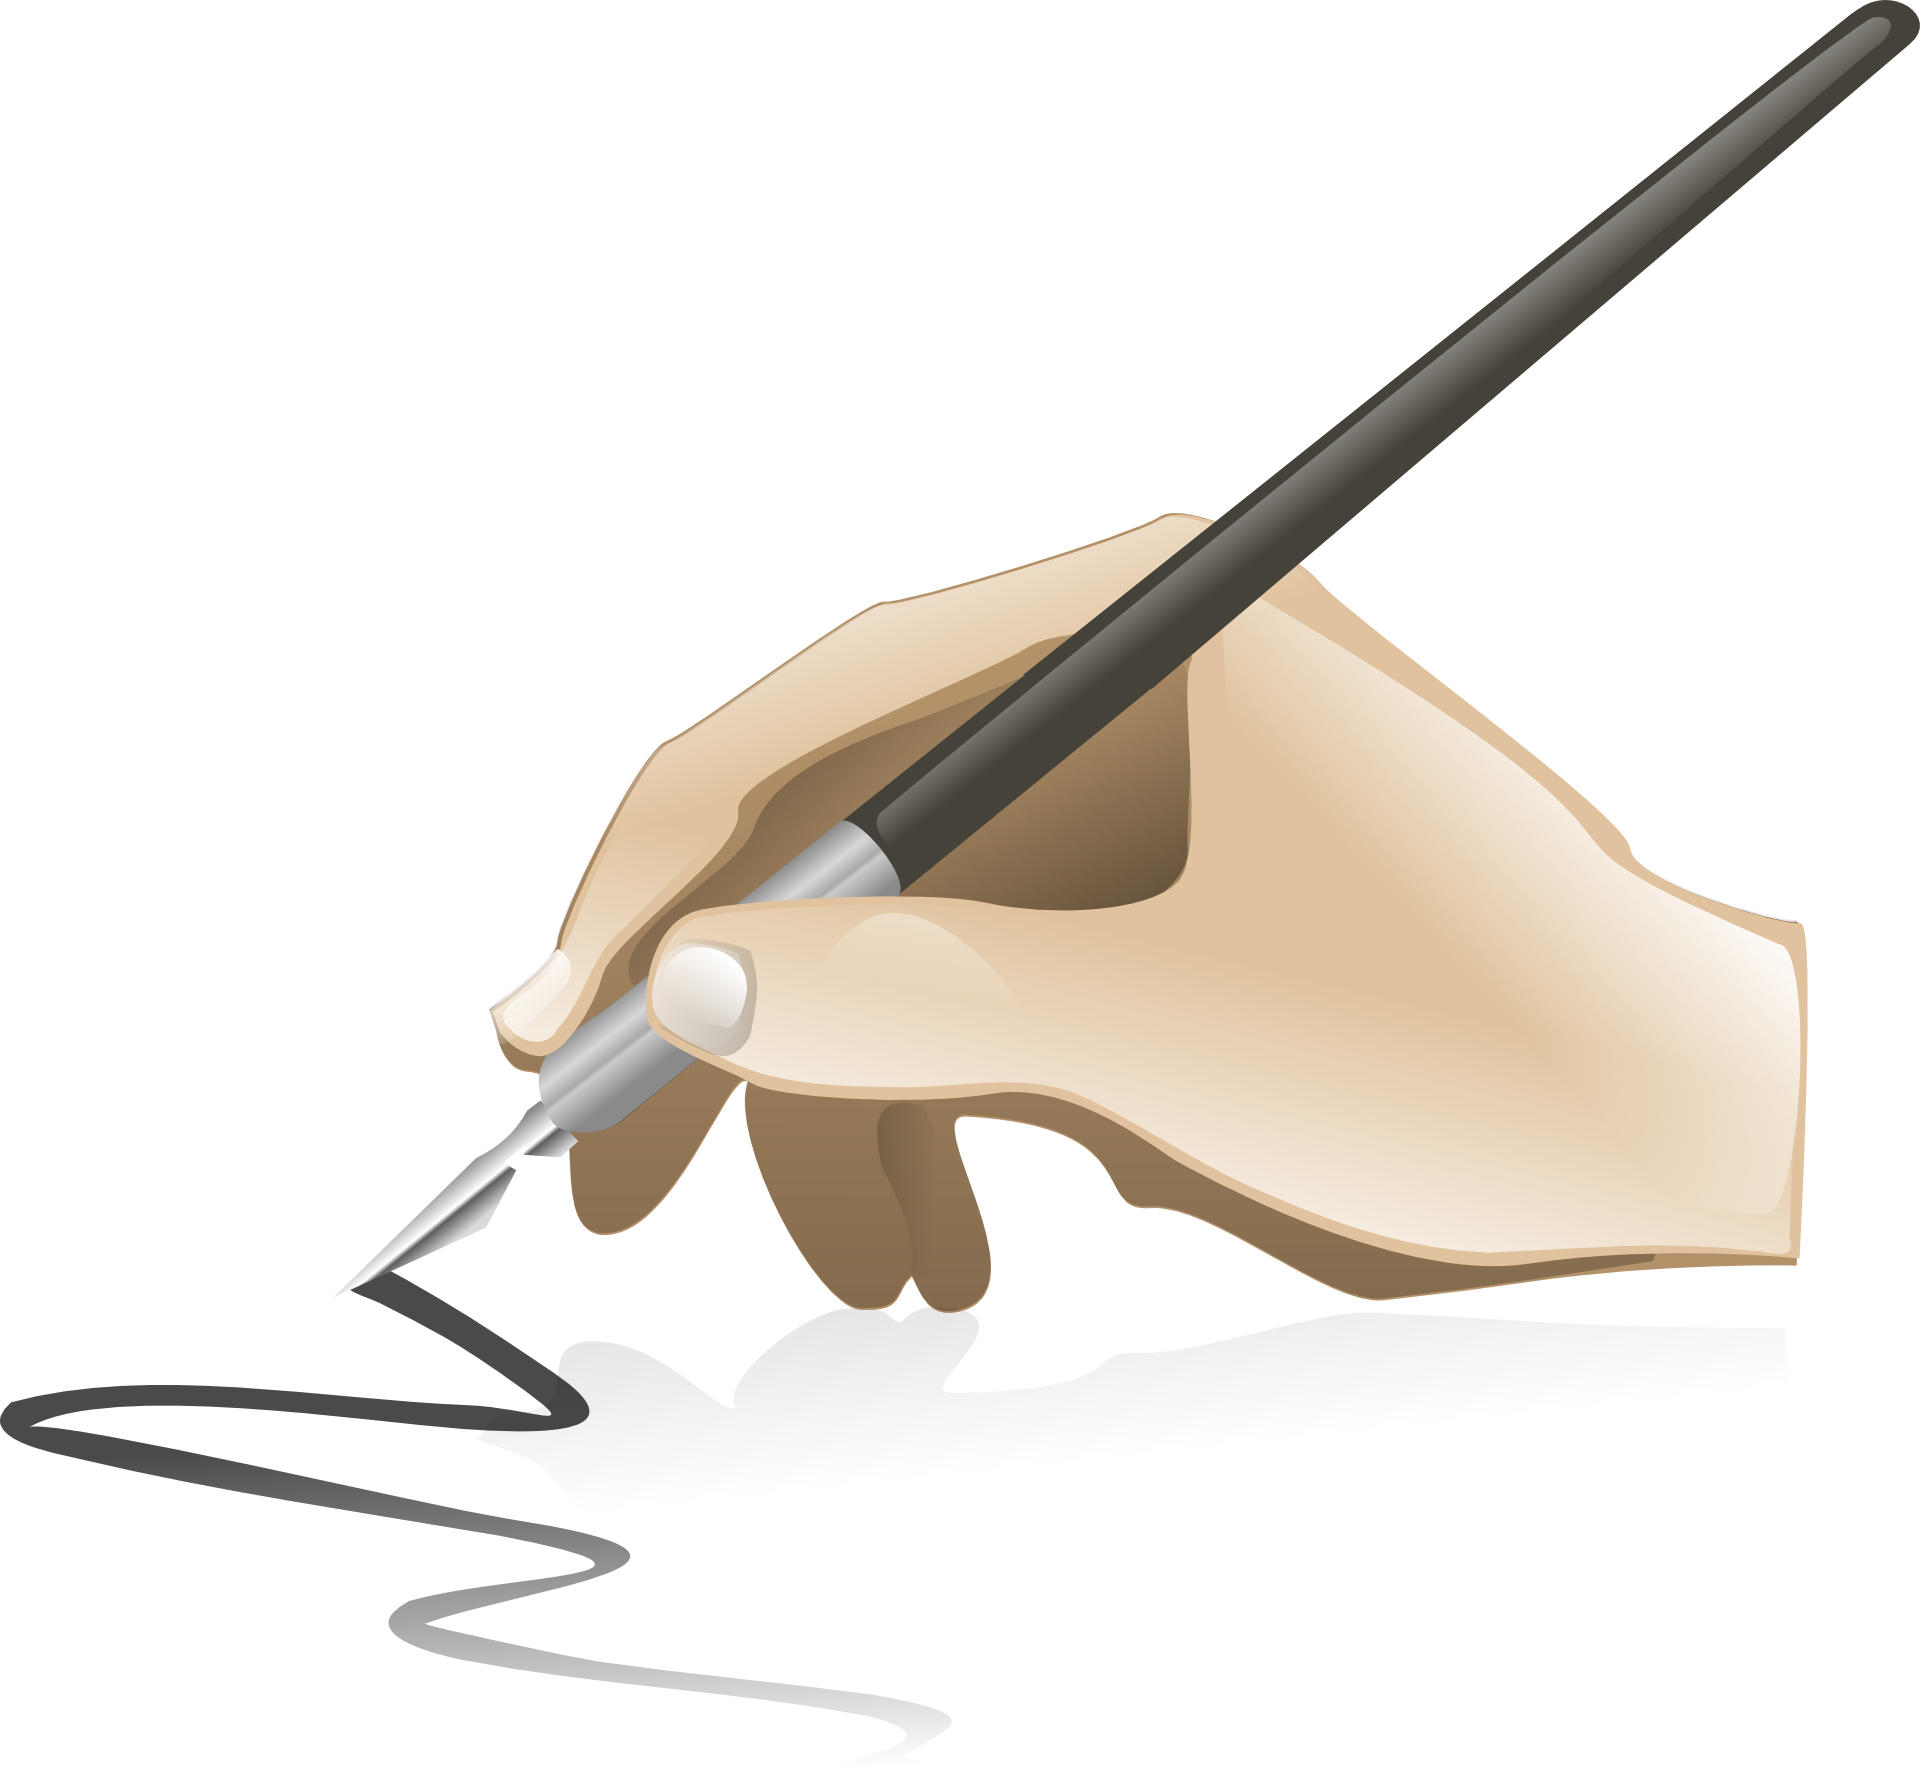 Pen,Hand of calligraphy draw artist vector